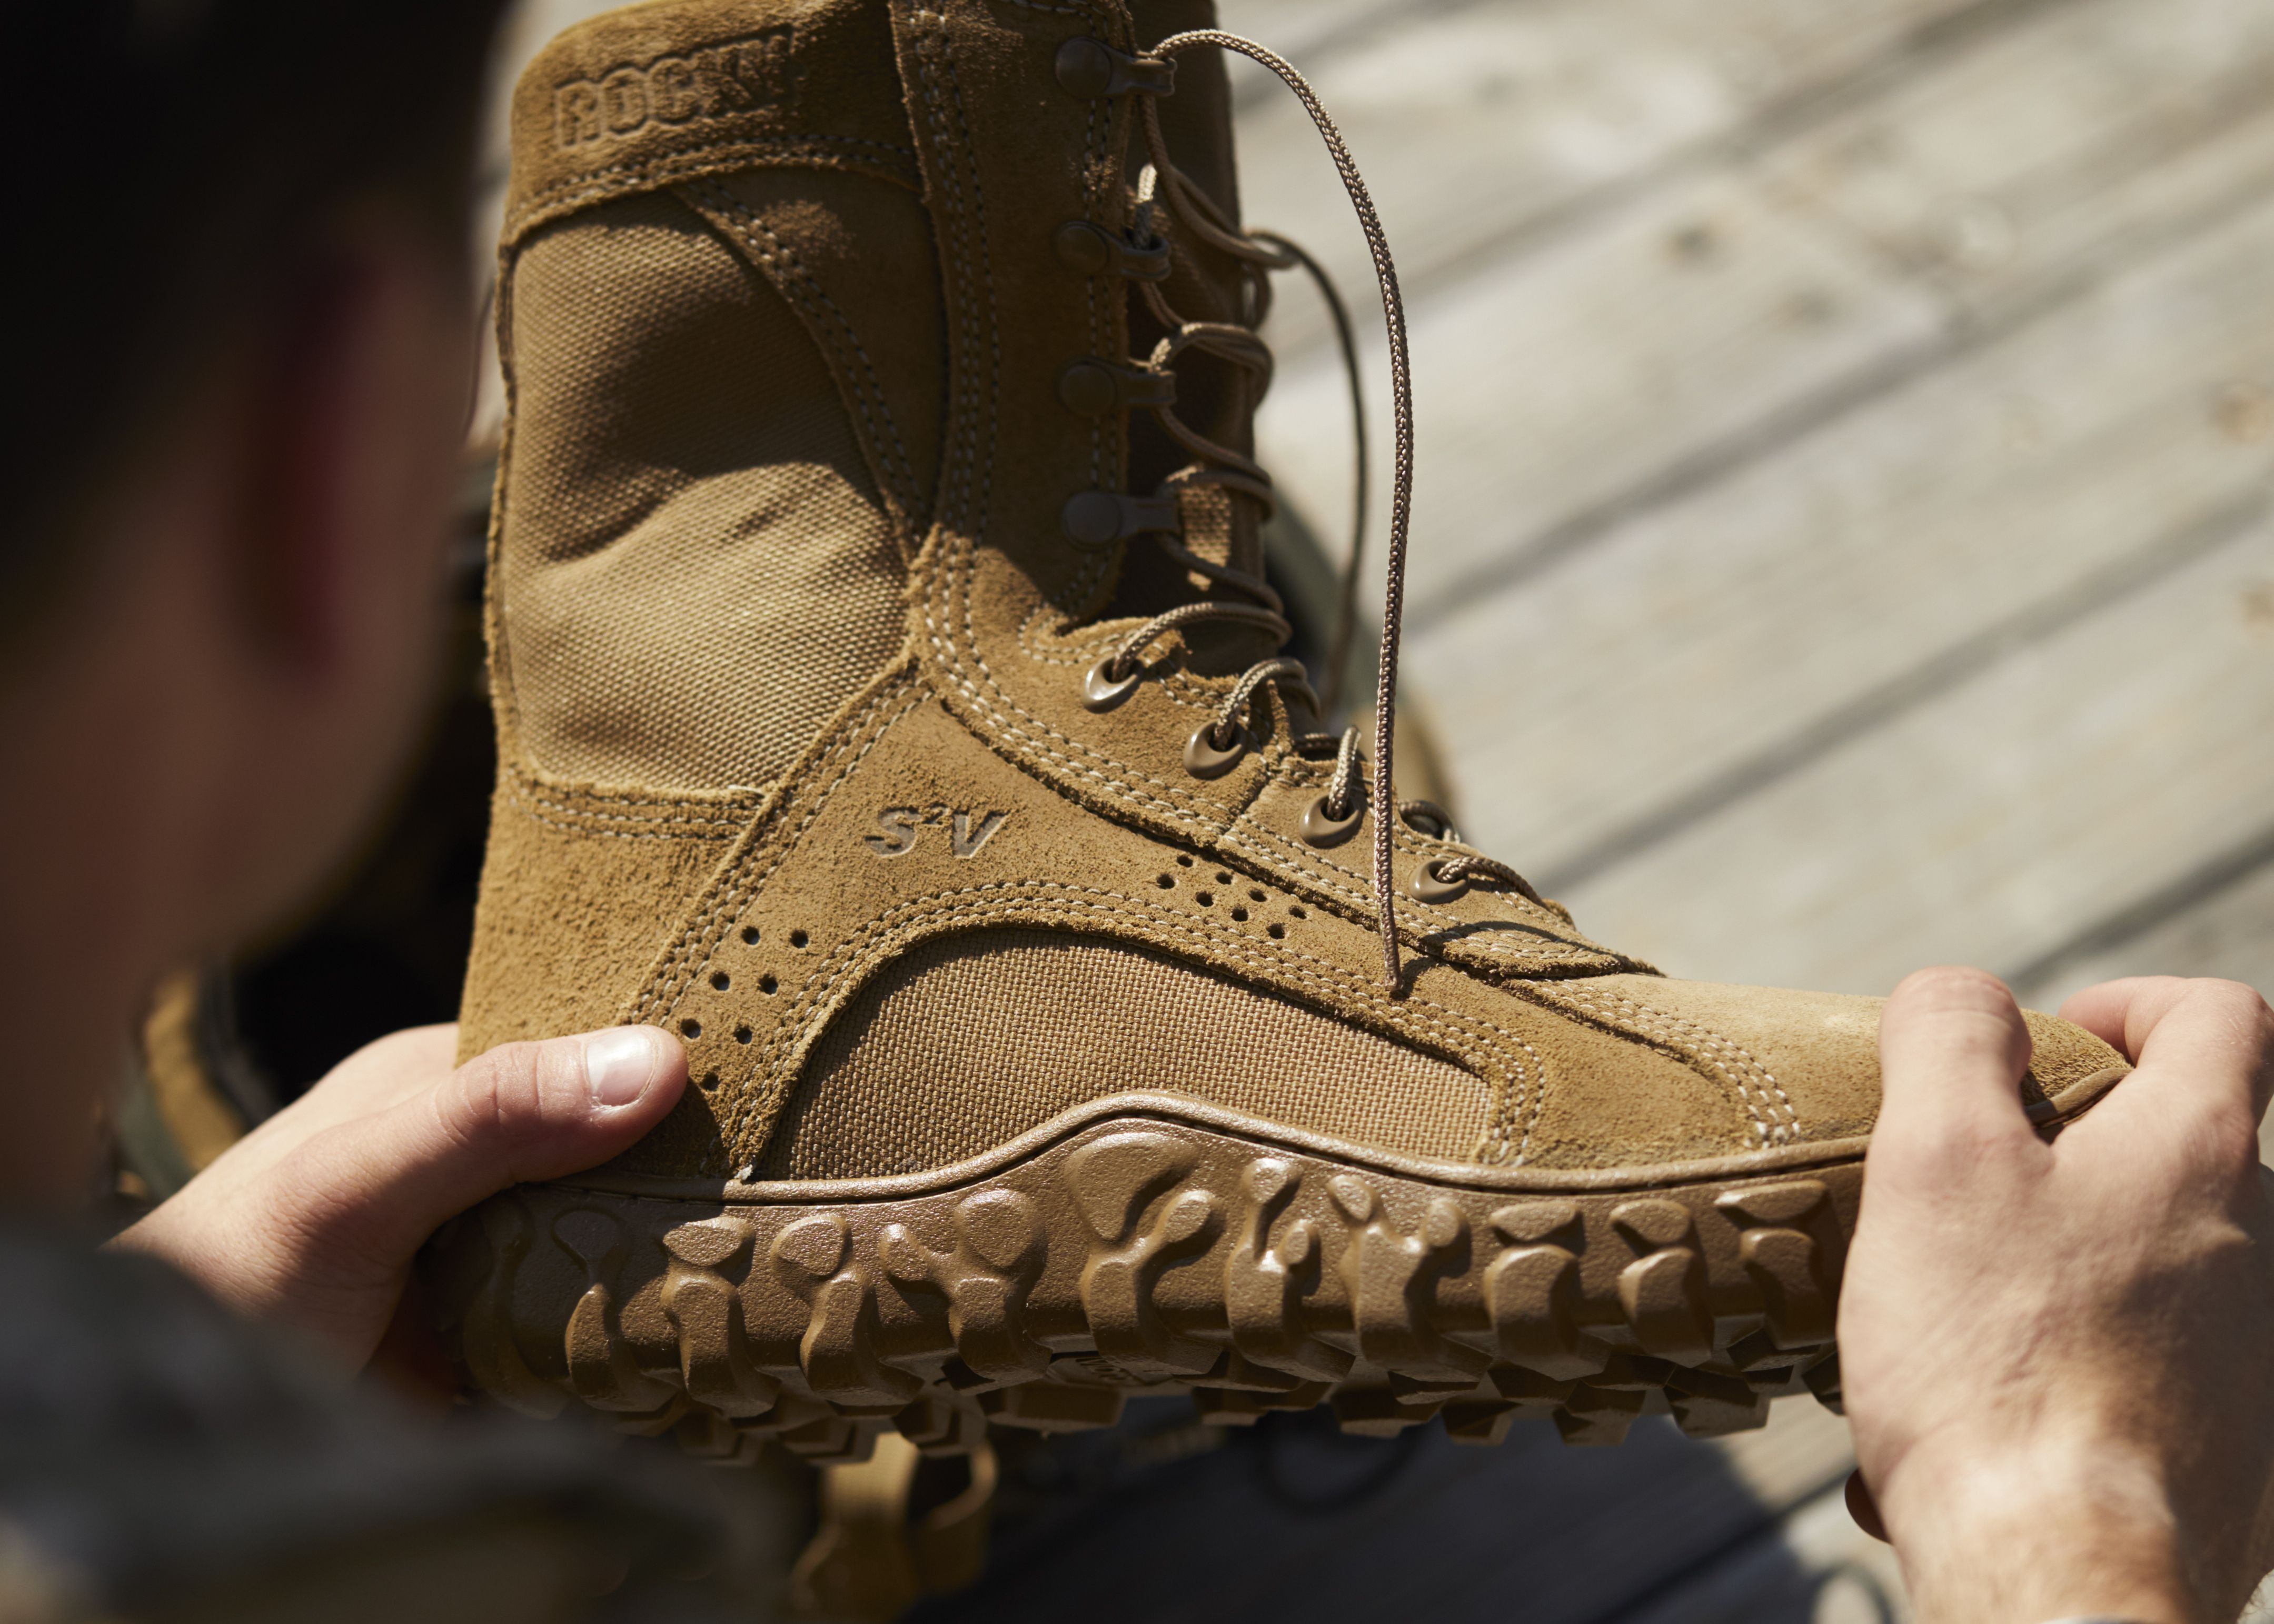 Rocky S2v Tactical Military Boot Boots Military Boots Coyote Brown Boots